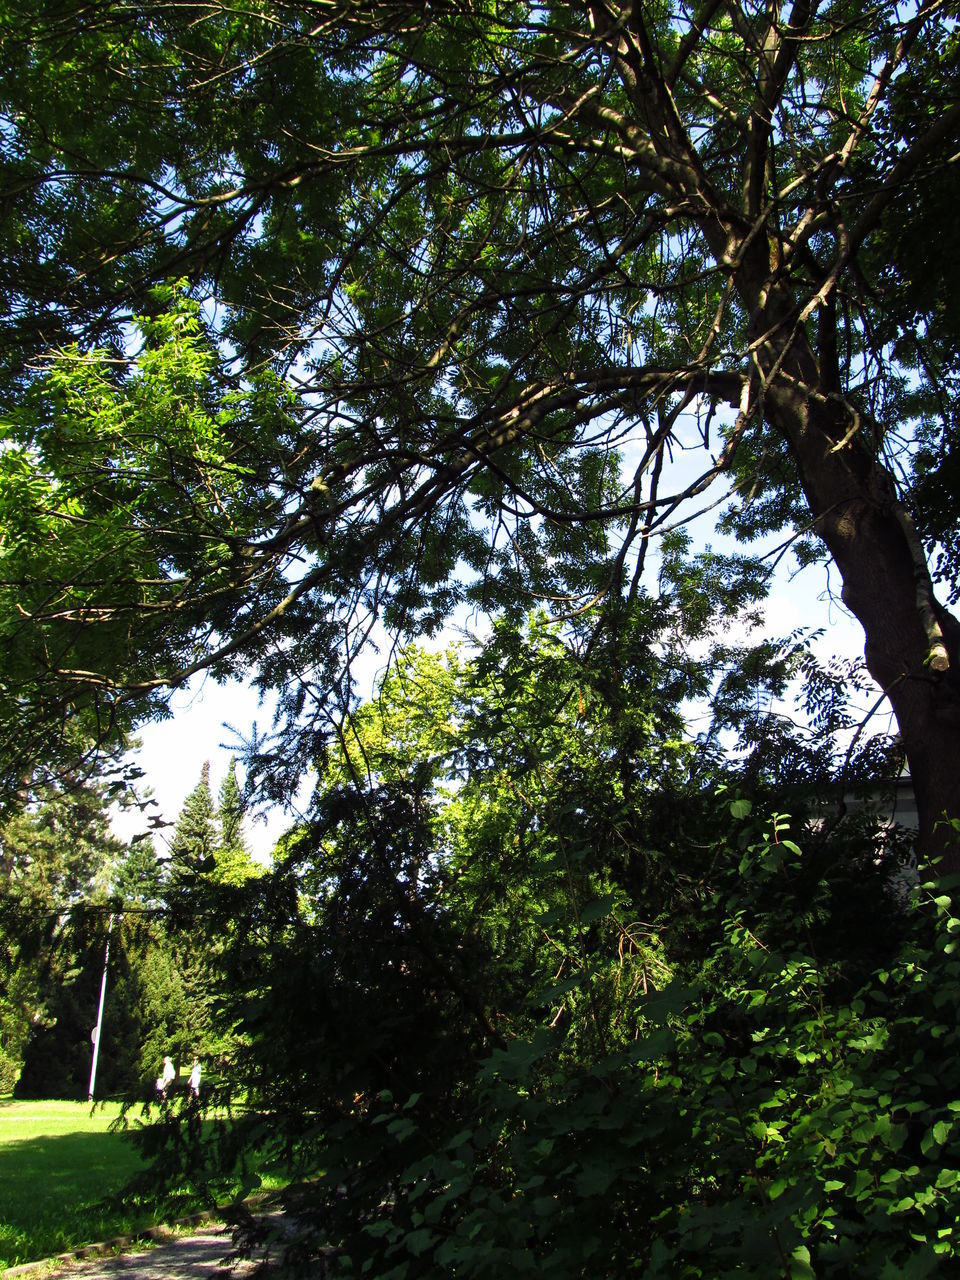 tree, growth, low angle view, nature, day, forest, beauty in nature, outdoors, tranquility, green color, branch, no people, scenics, sky